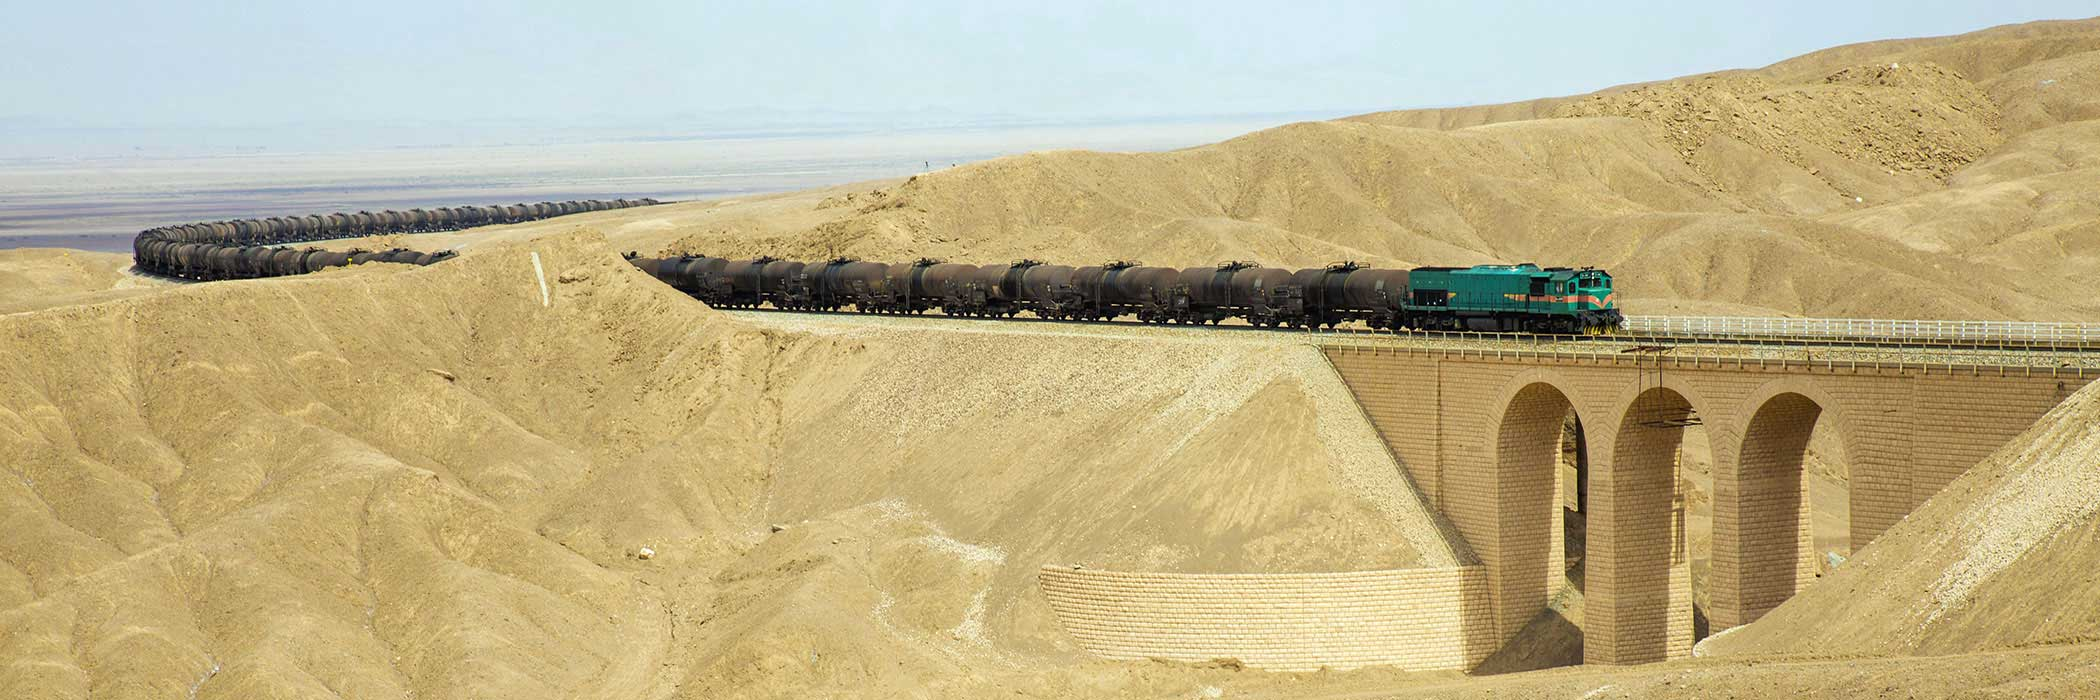 Freight train hauling tank wagons, Iran